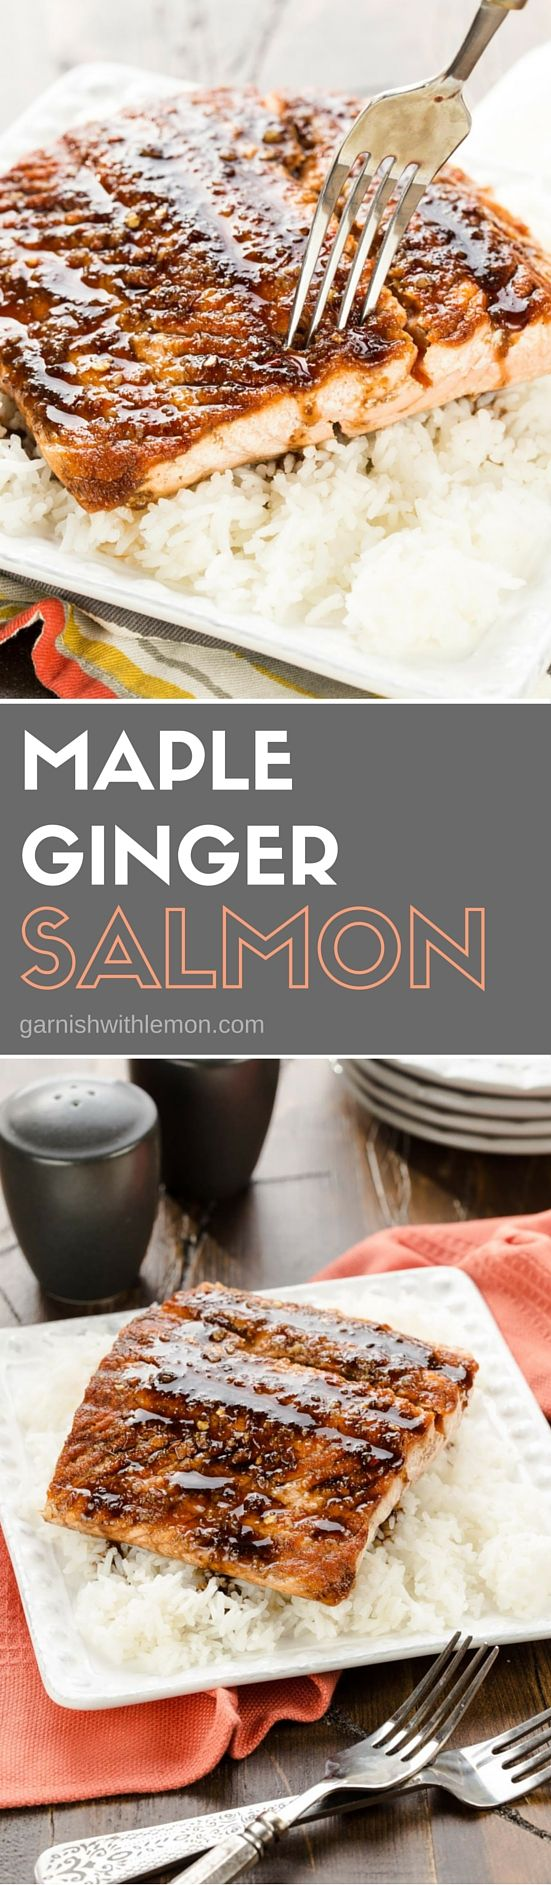 Looking to get more fish in your diet? This easy recipe for Maple Ginger Salmon will make a fish lover out of anyone! ~ http://www.garnishwithlemon.com